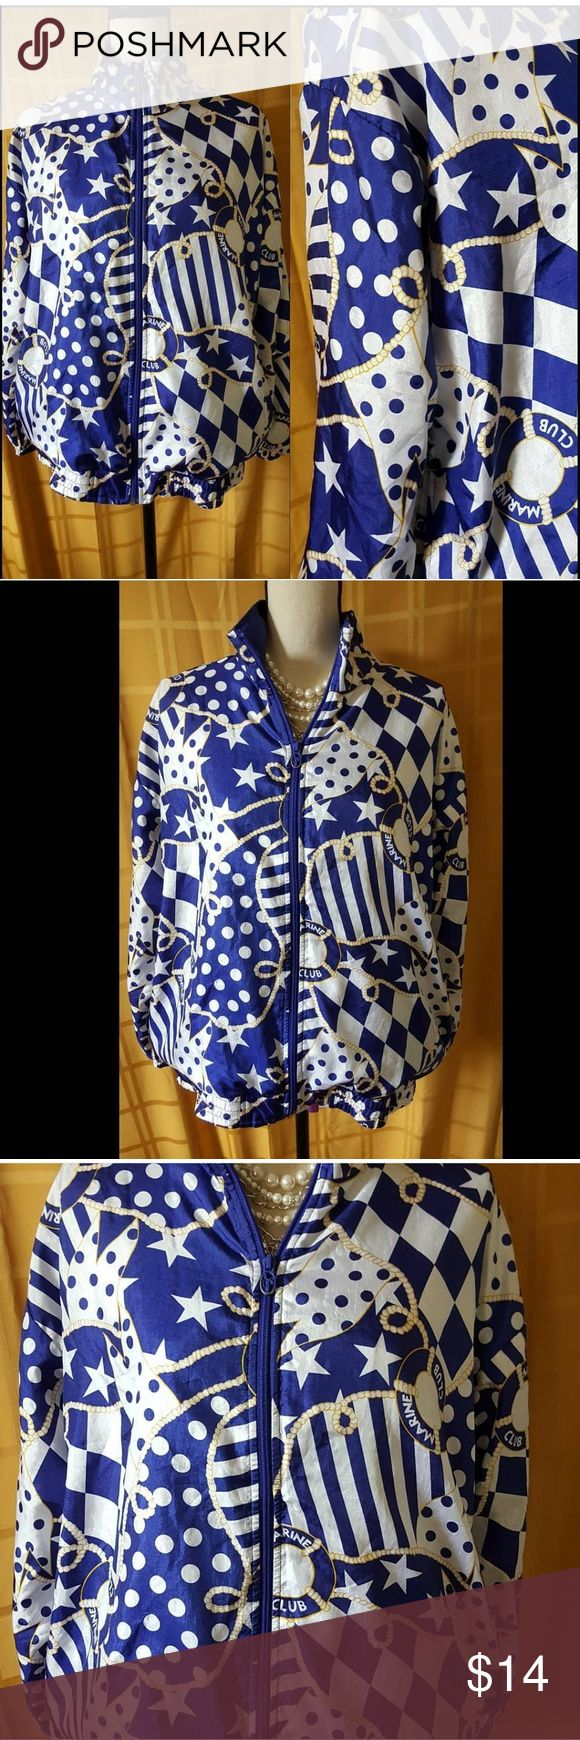 Nautical Bomber Jacket Vintage Bomber. Great condition. Side Pockets. Zip up style. Lovely nautical designs. Vintage Jackets & Coats